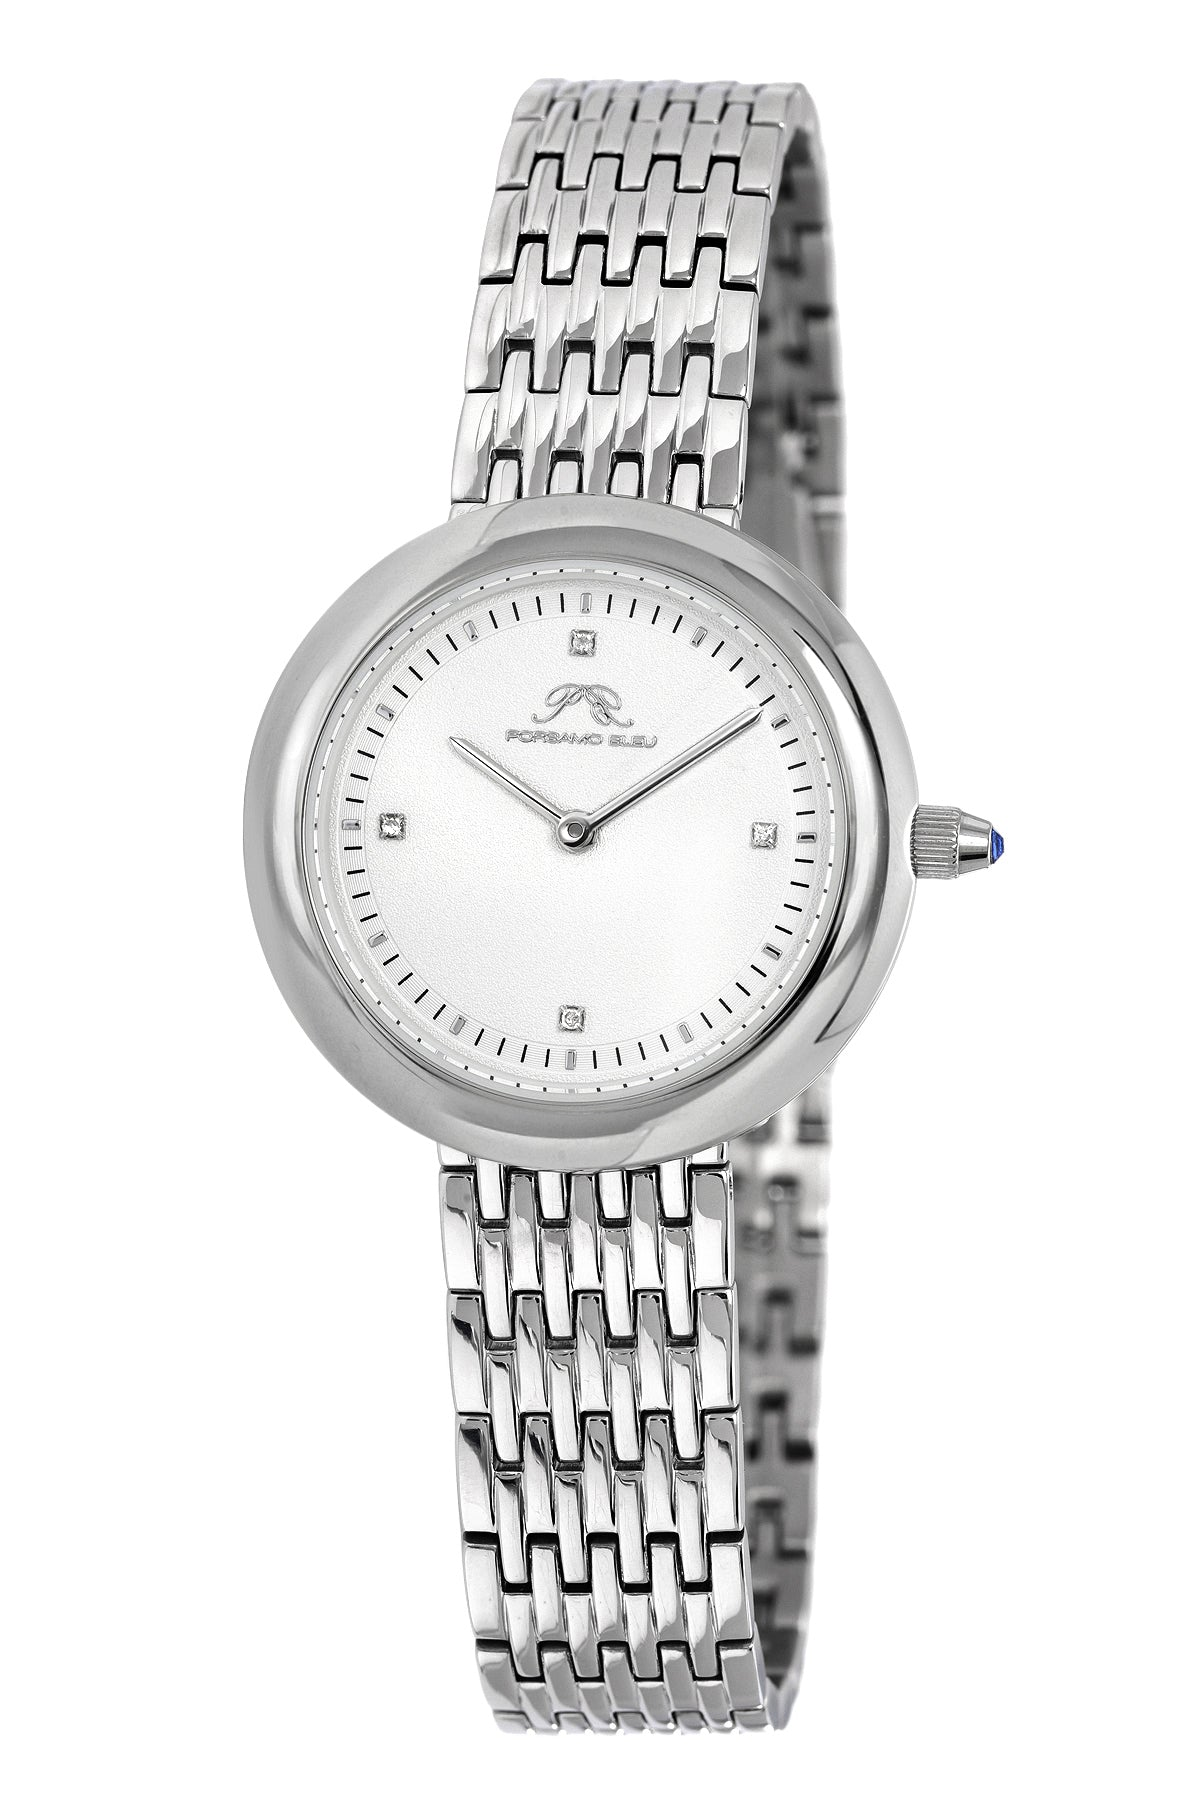 Porsamo Bleu Florentina luxury diamond women's stainless steel watch, white,silver 901AFLS